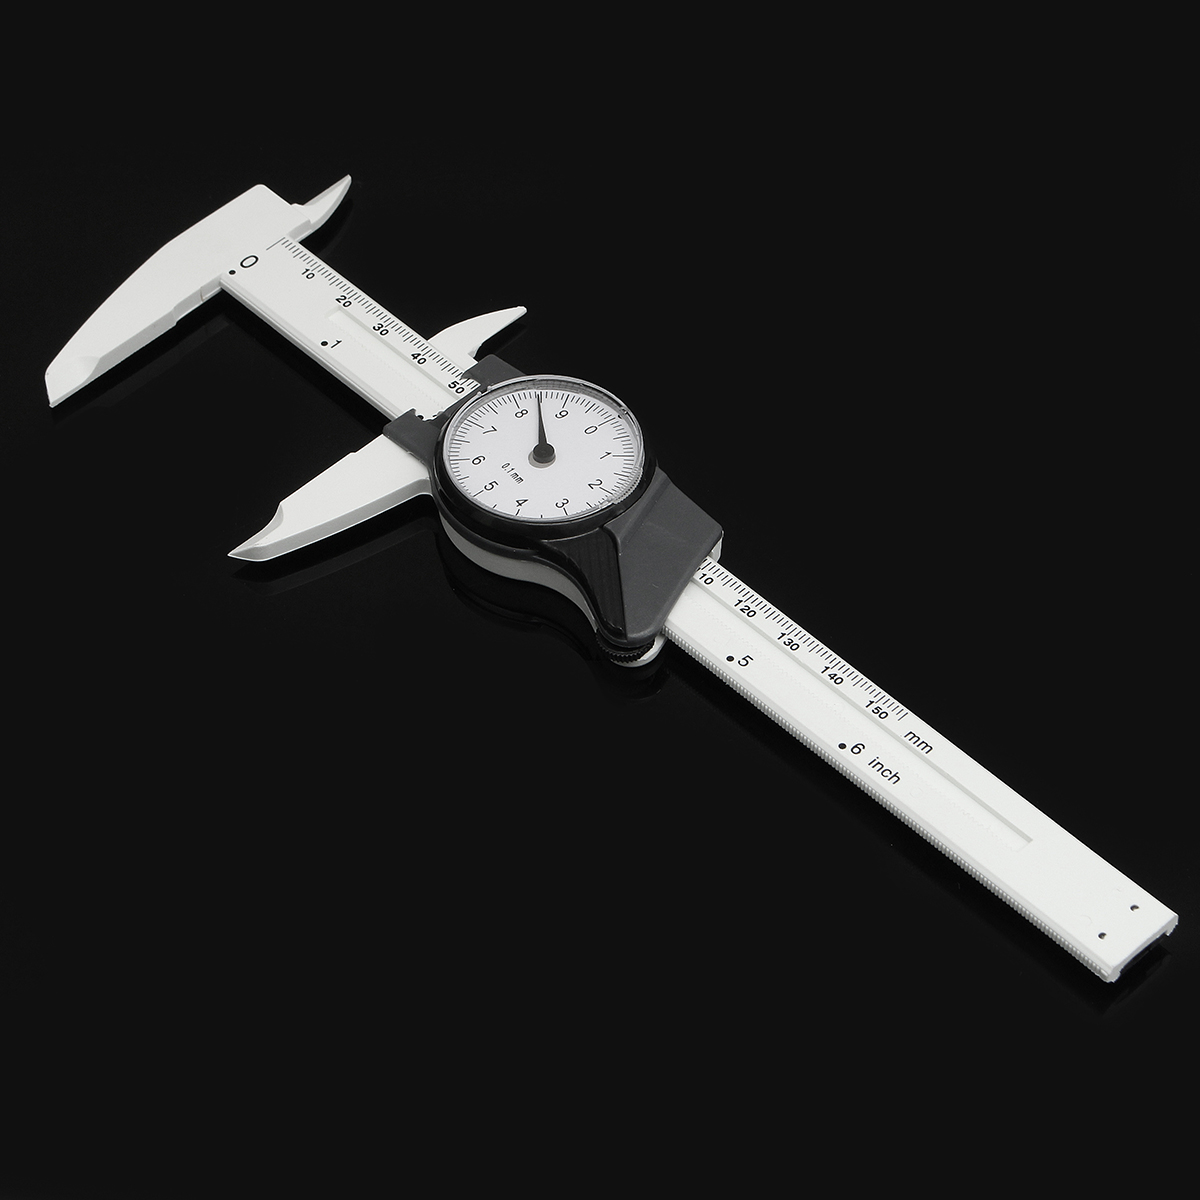 150mm Scale Dial Vernier Caliper Metric Measurement